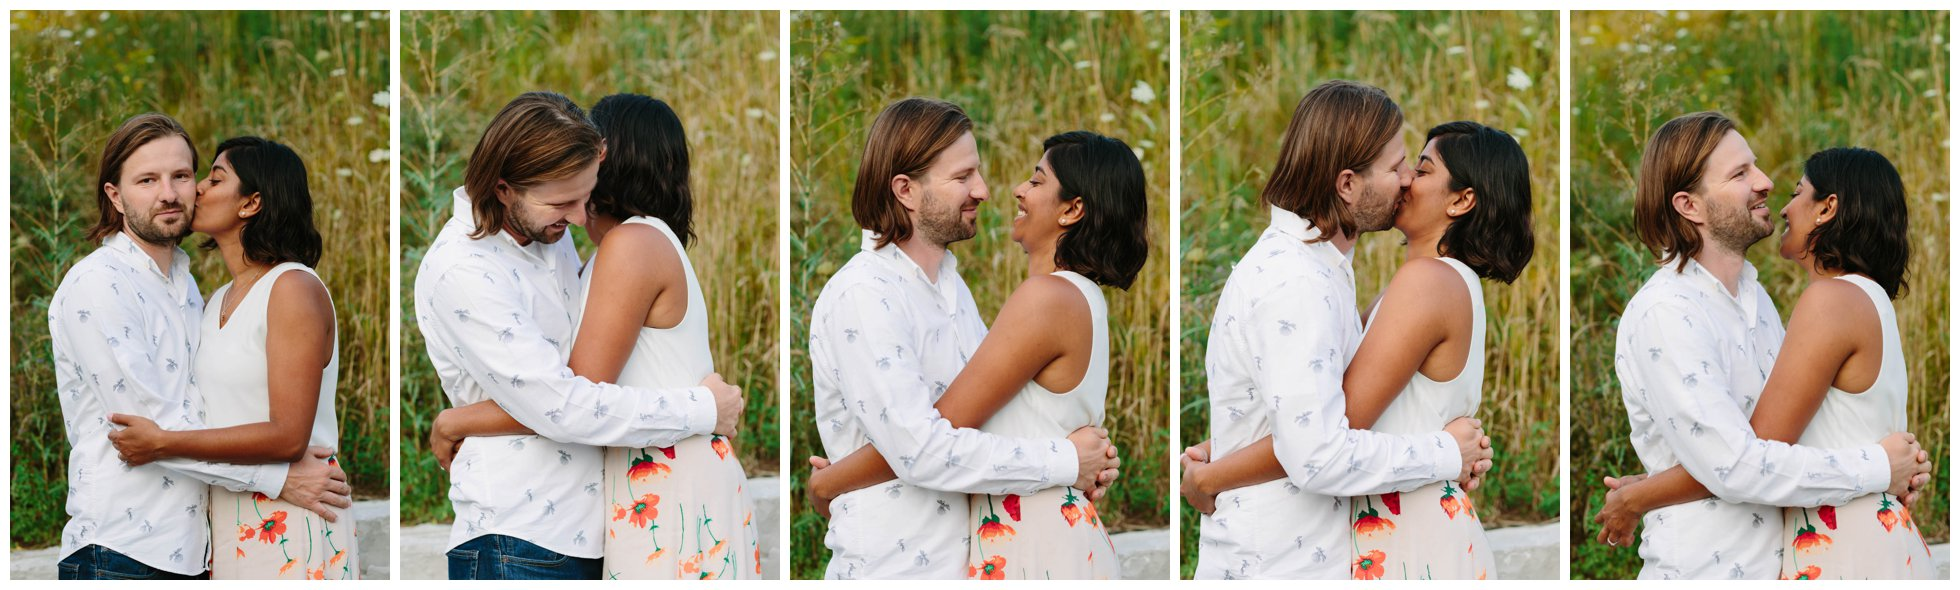 Toronto Engagement Session - Krzysztof and Dee (Life by Selena Photography)_0010.jpg